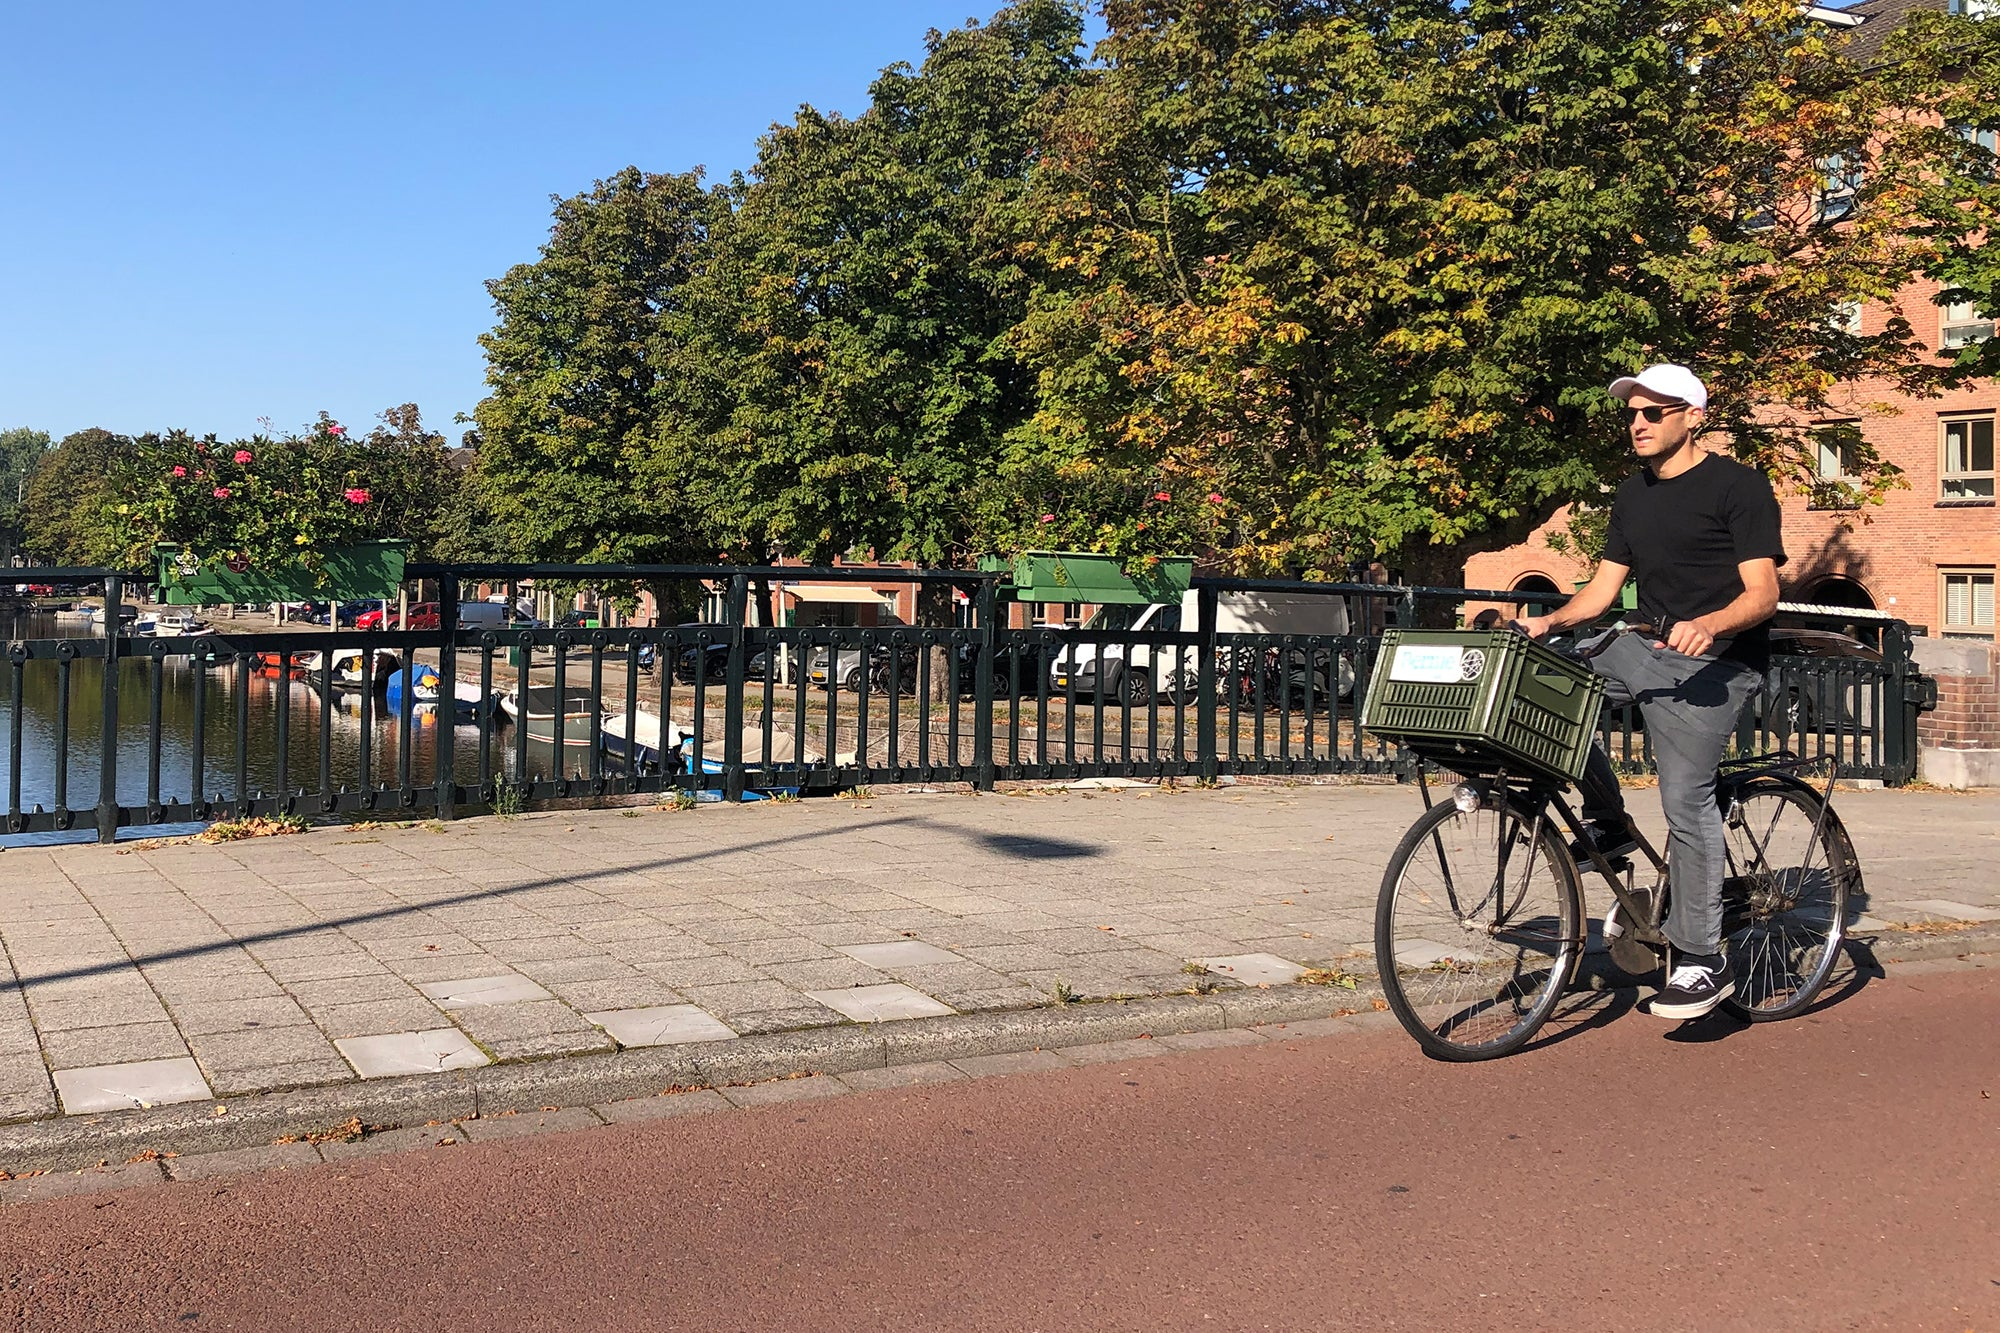 GLCO's Director of Operations Justin Steinhardt bike riding in Amsterdam.